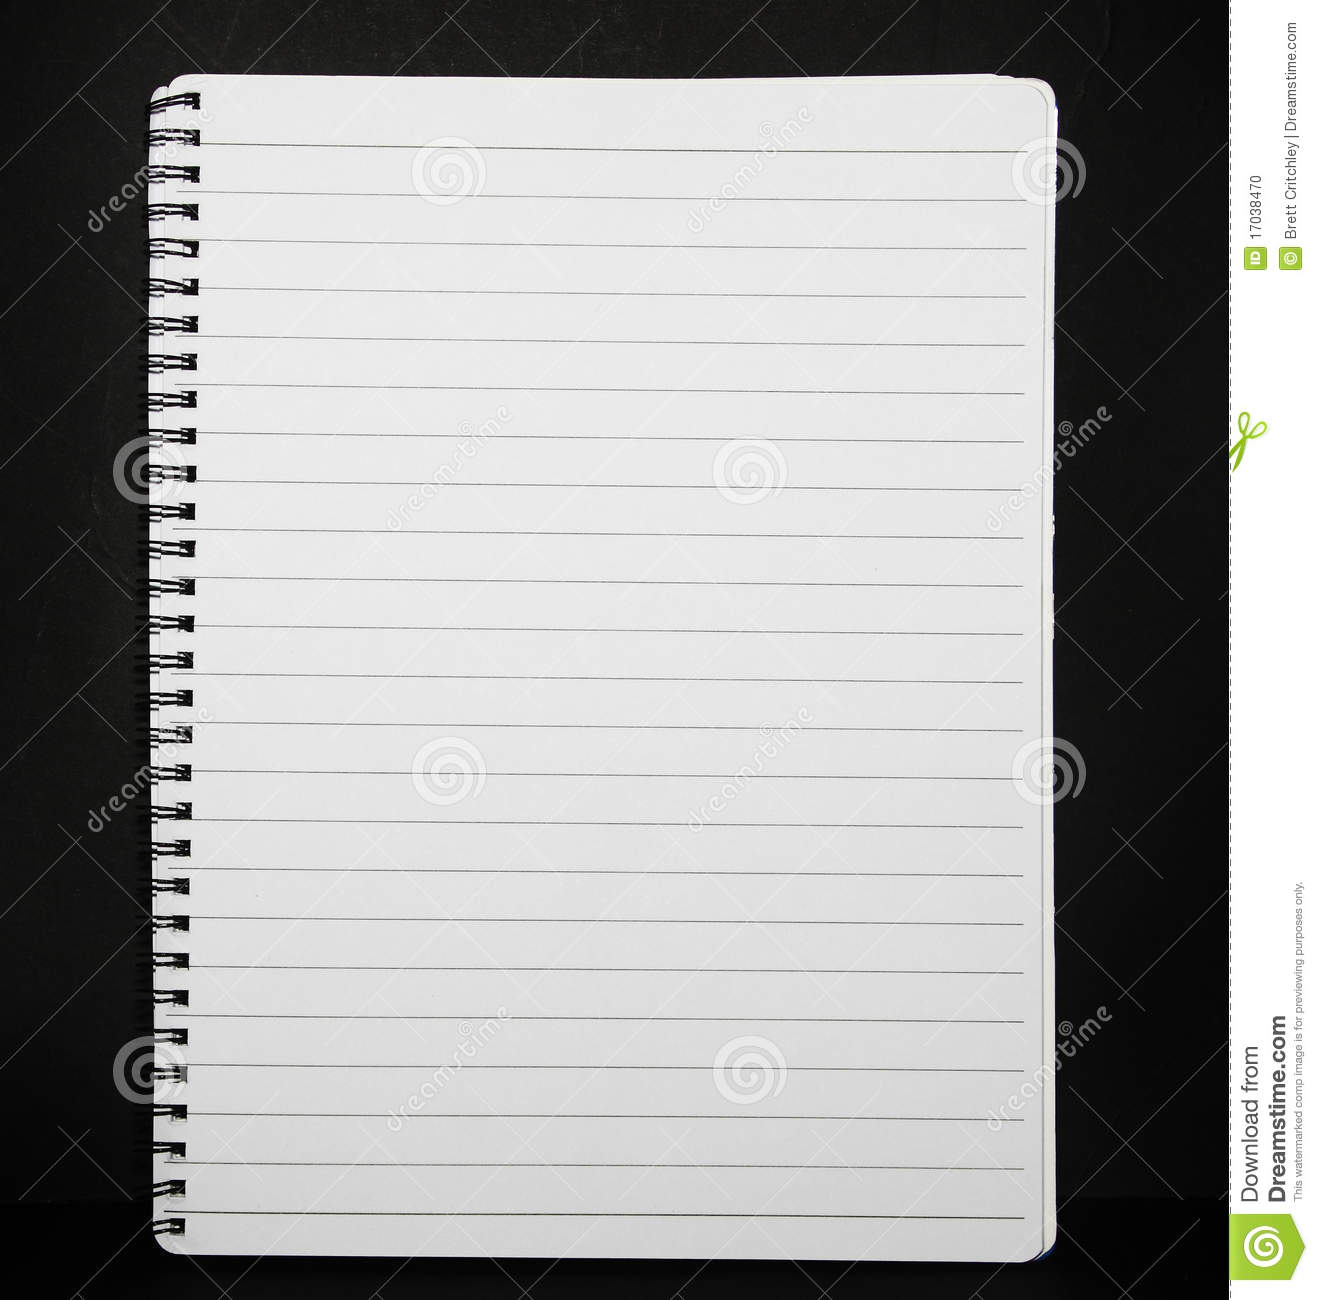 Note pad lined paper stock photo. Image of list, book ...